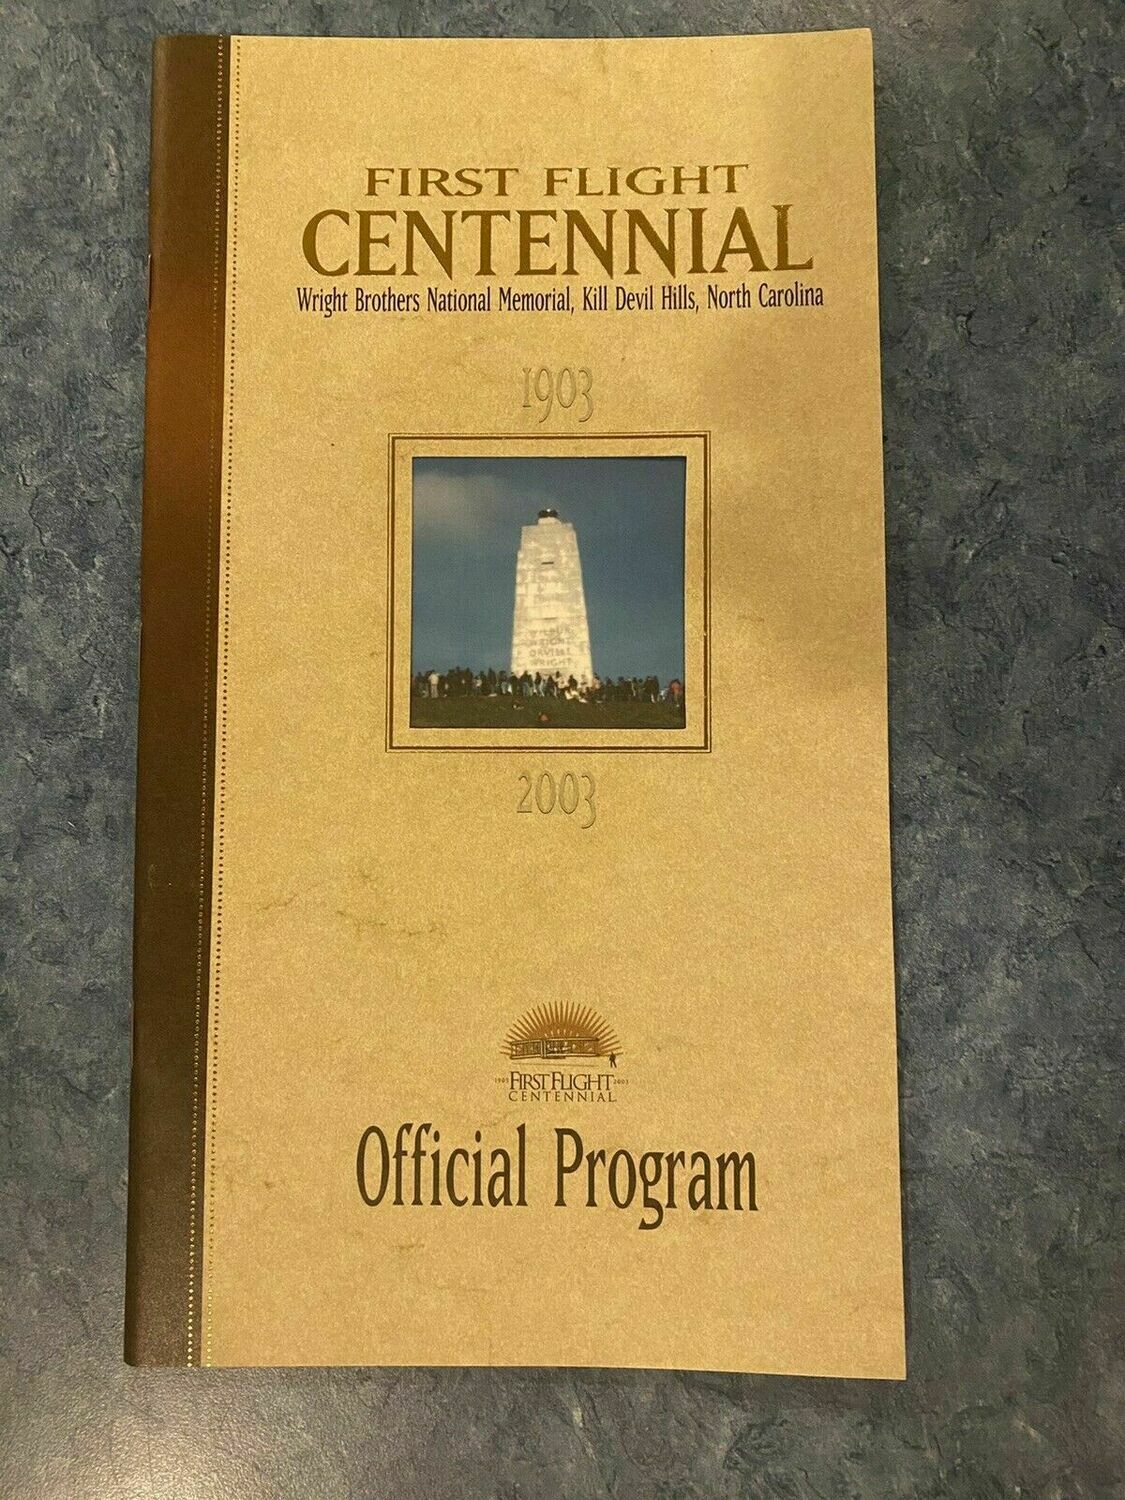 First Flight Centennial Official Program